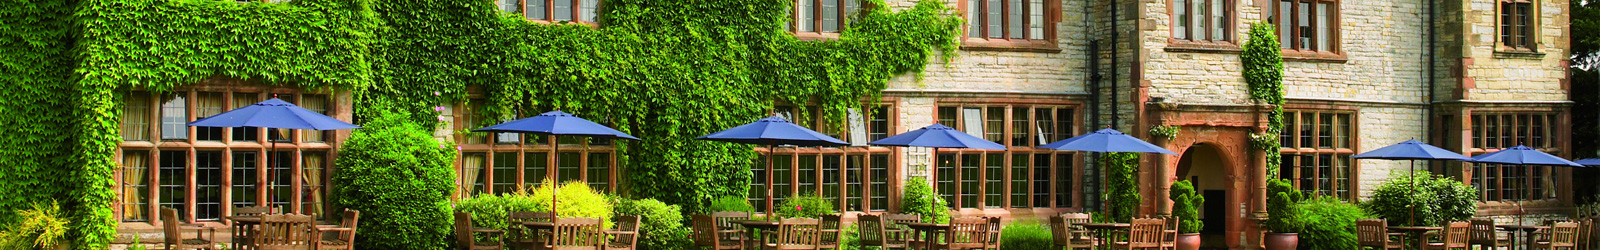 We'll find the perfect traditional country hotel for your event or conference